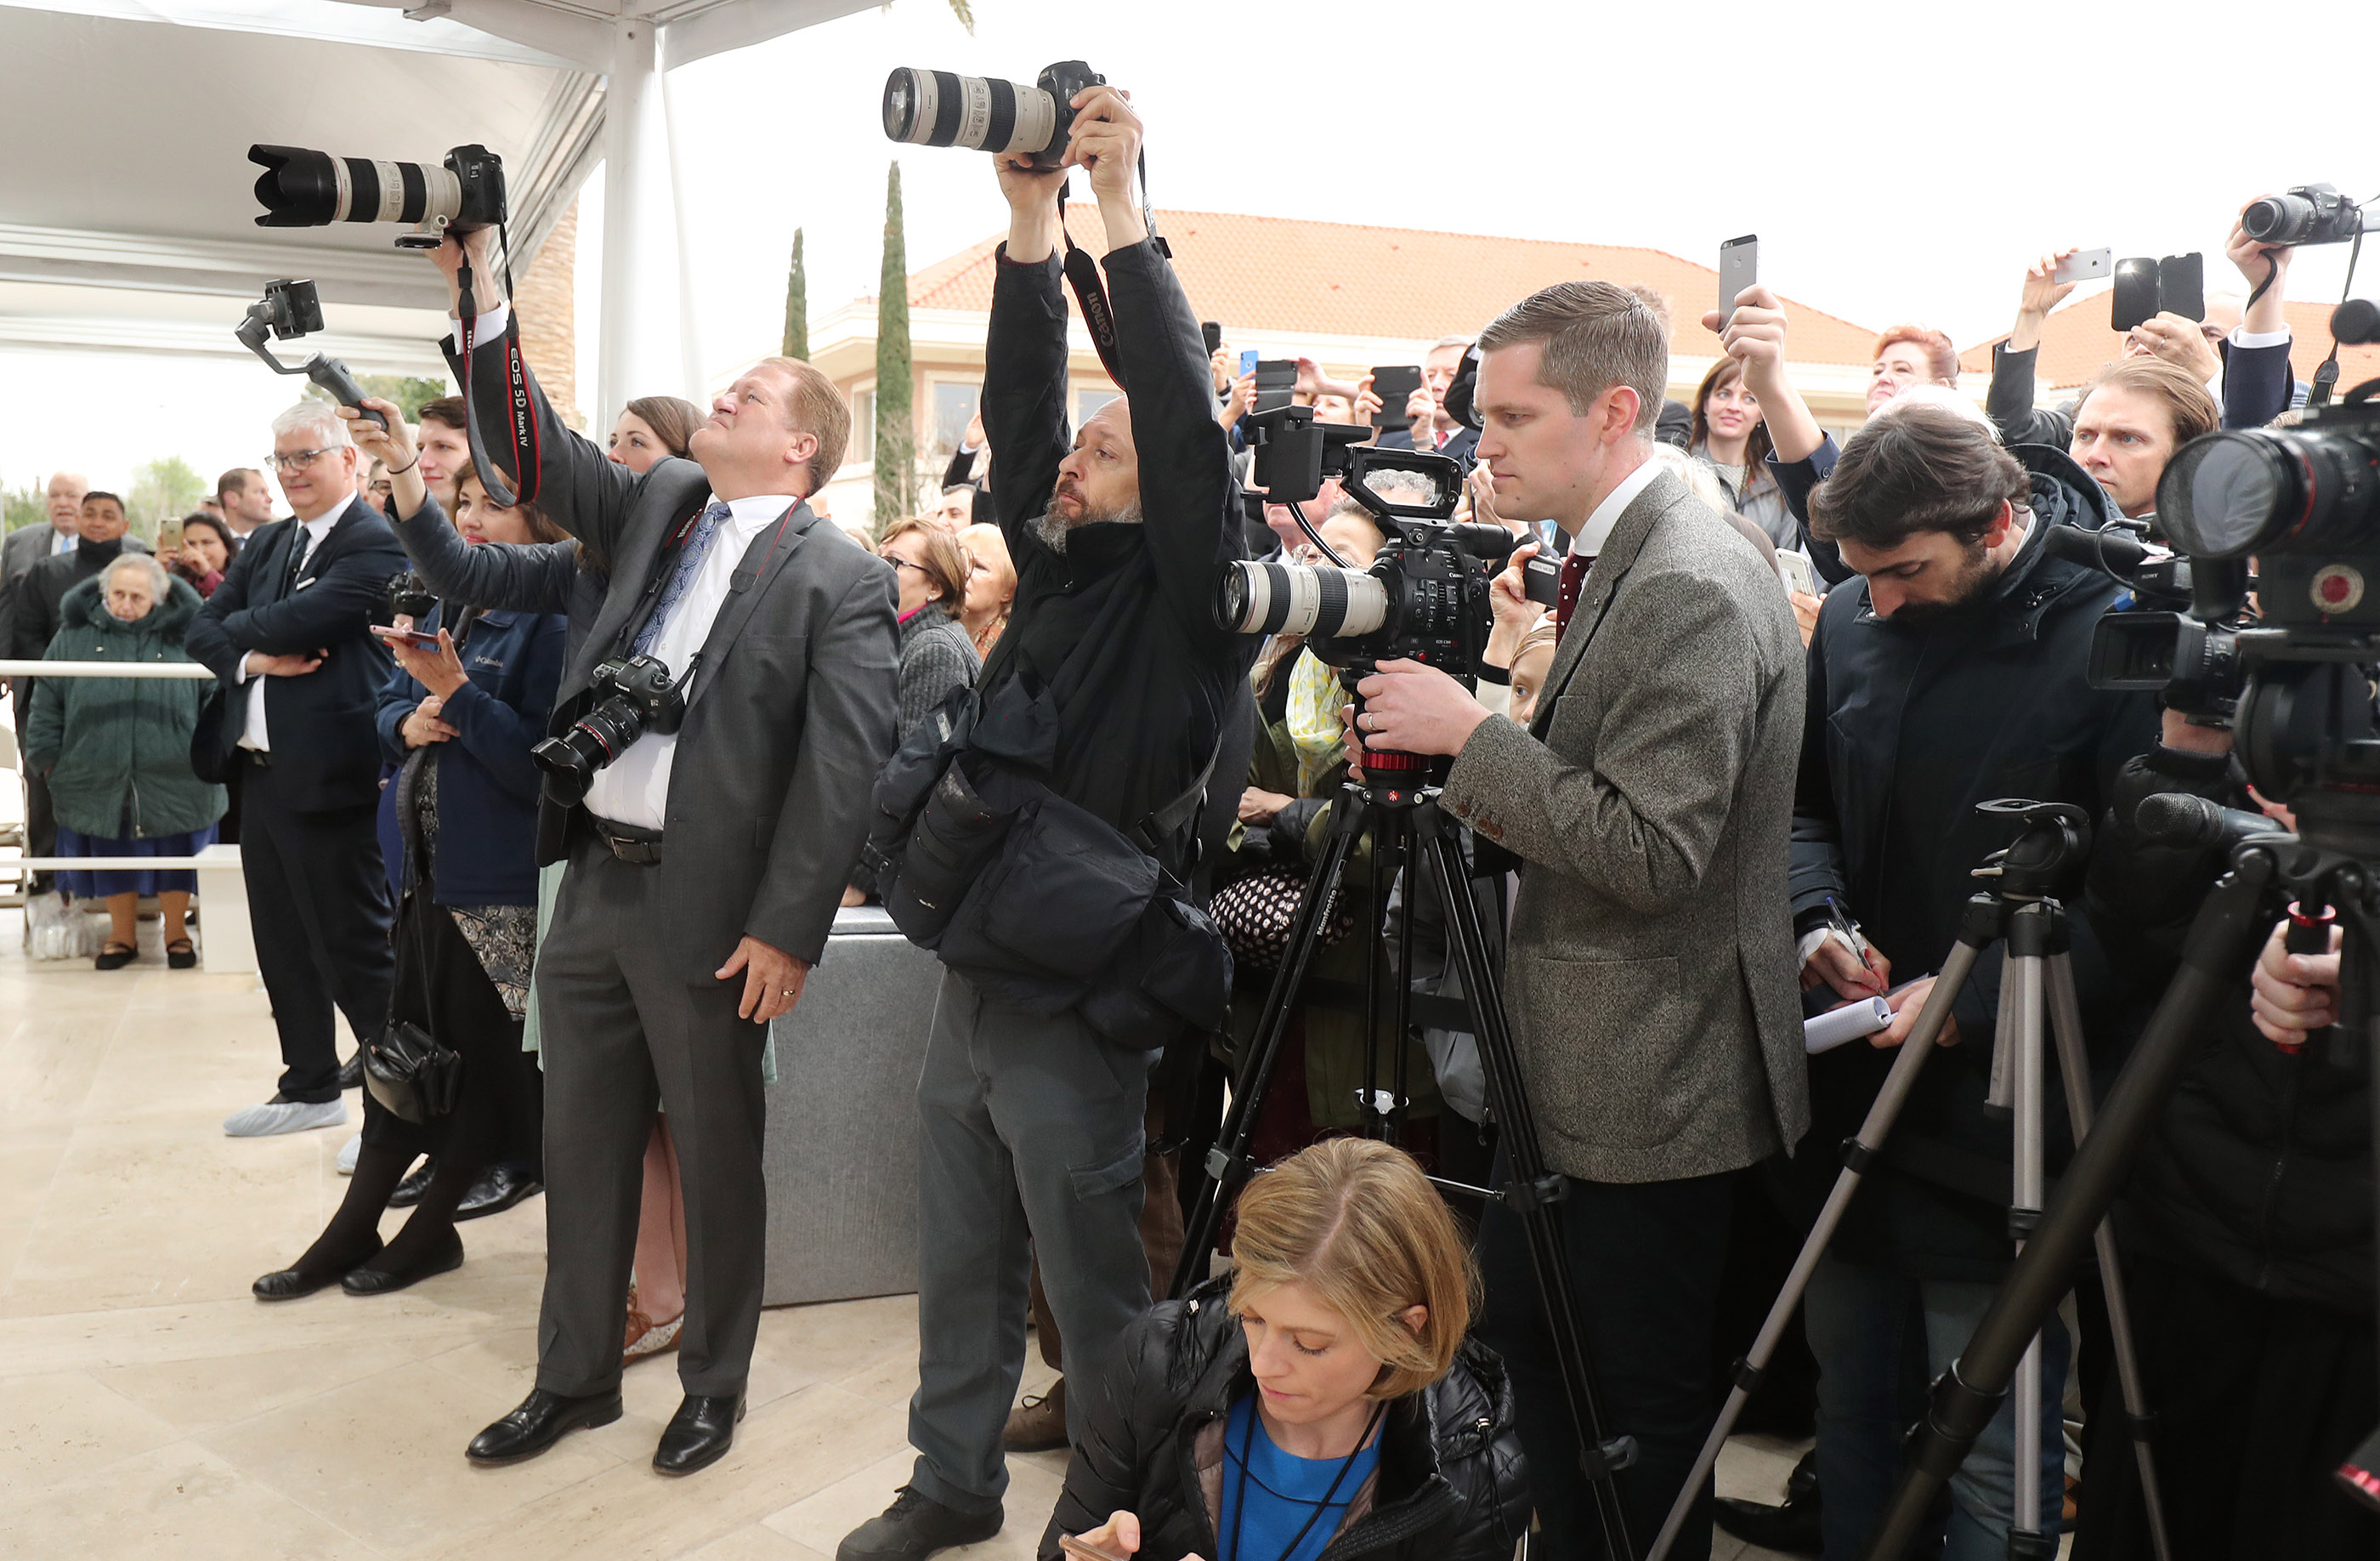 Photos are shot during the cornerstone ceremony for the dedication of the Rome Italy Temple of The Church of Jesus Christ of Latter-day Saints in Rome, Italy, on Sunday, March 10, 2019.